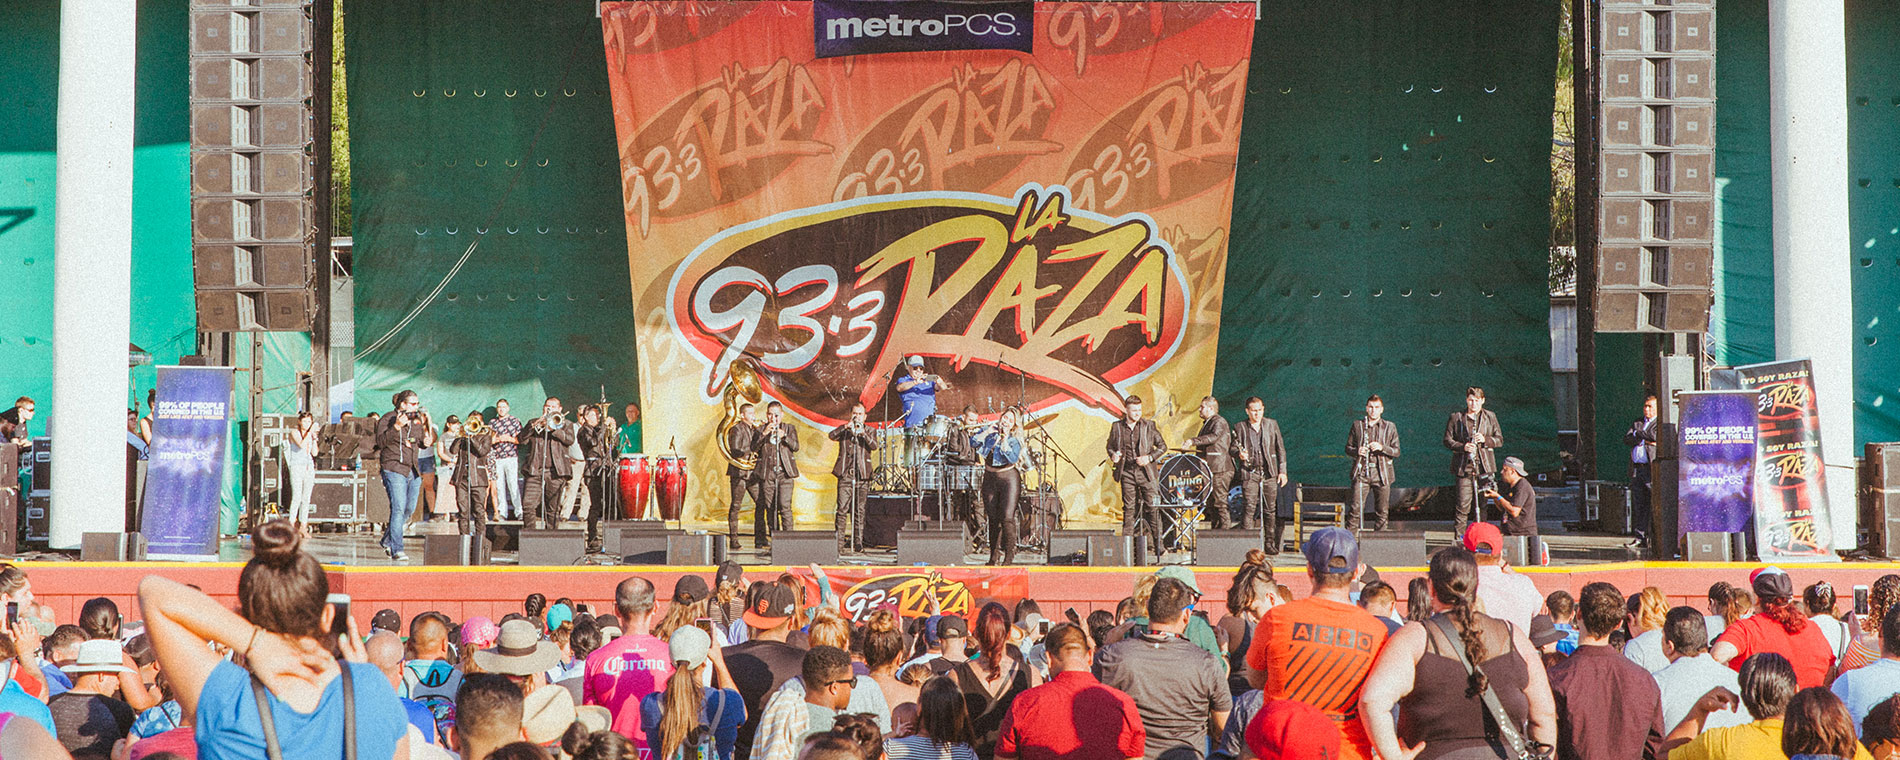 Latin Food & Music Festival at California's Great America